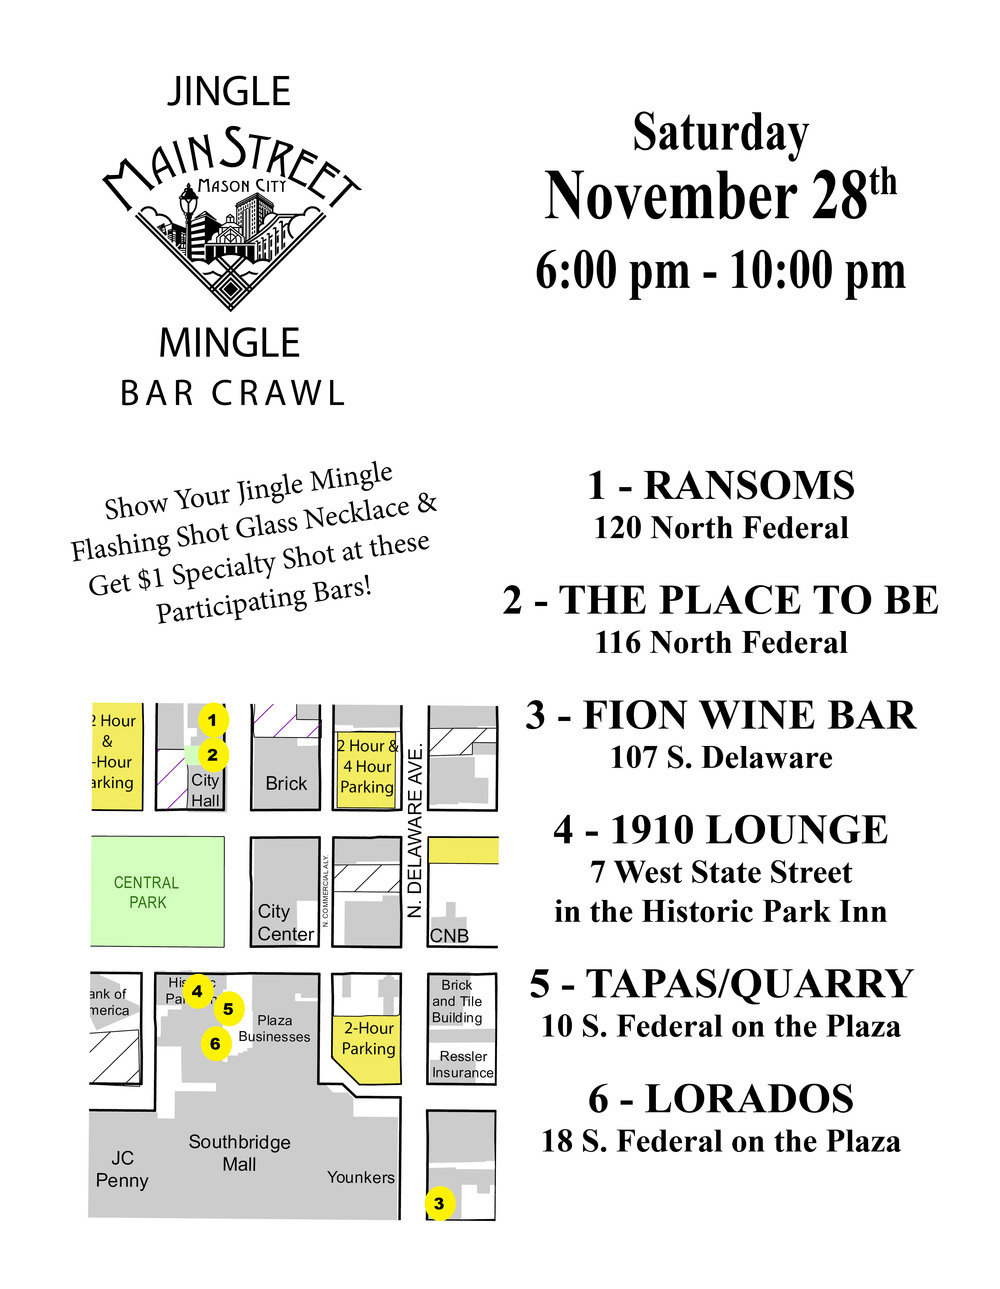 Jingle Mingle Bar Crawl 2015